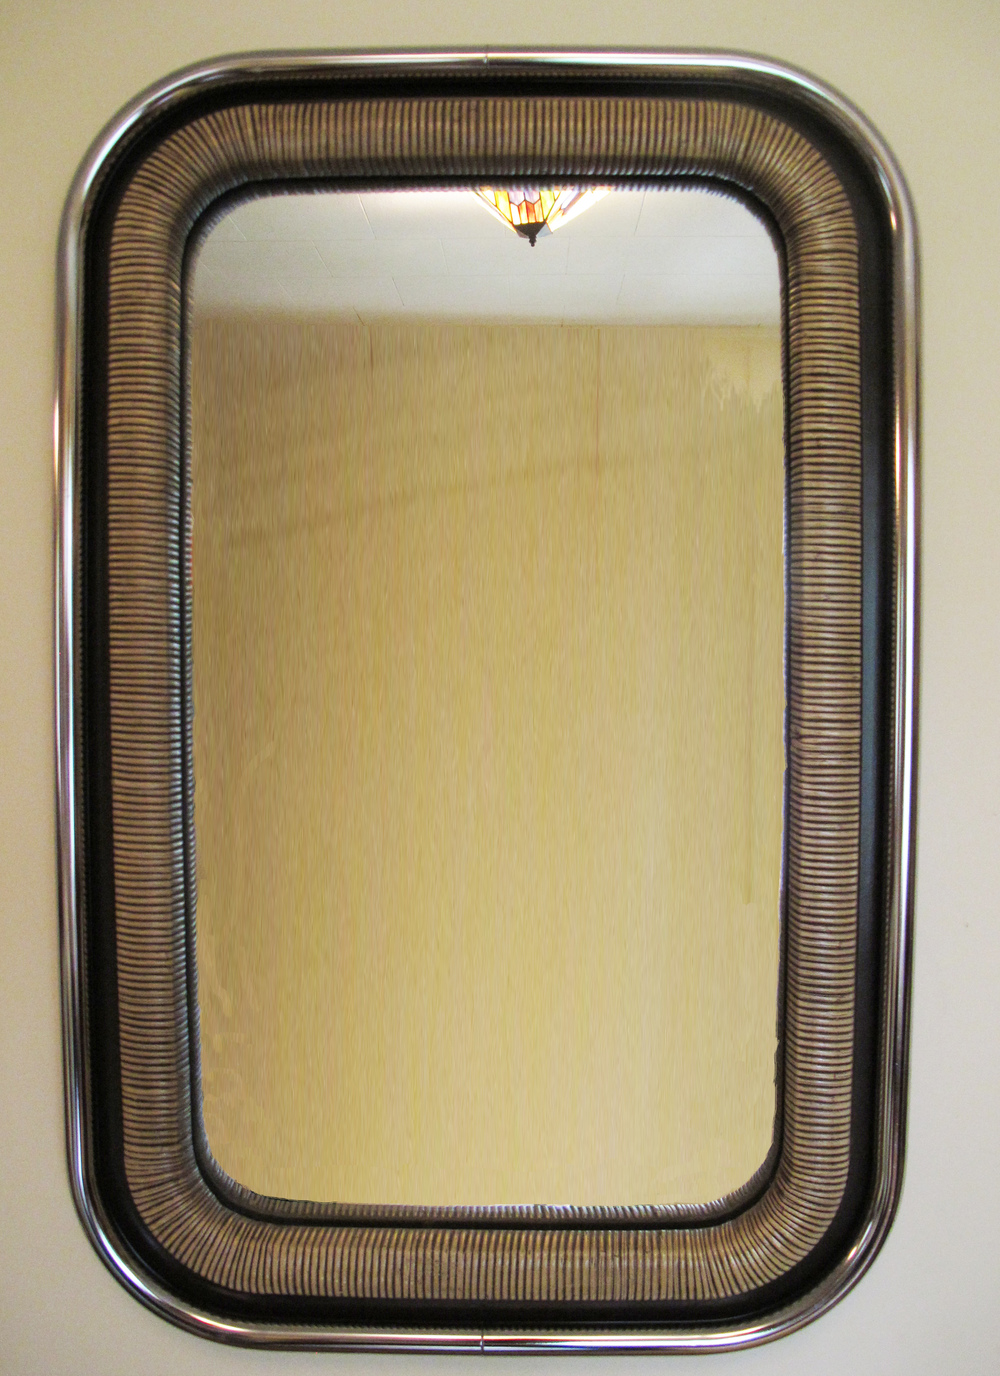 MID CENTURY CHROME AND WICKER OVAL MIRROR BY NUTONE